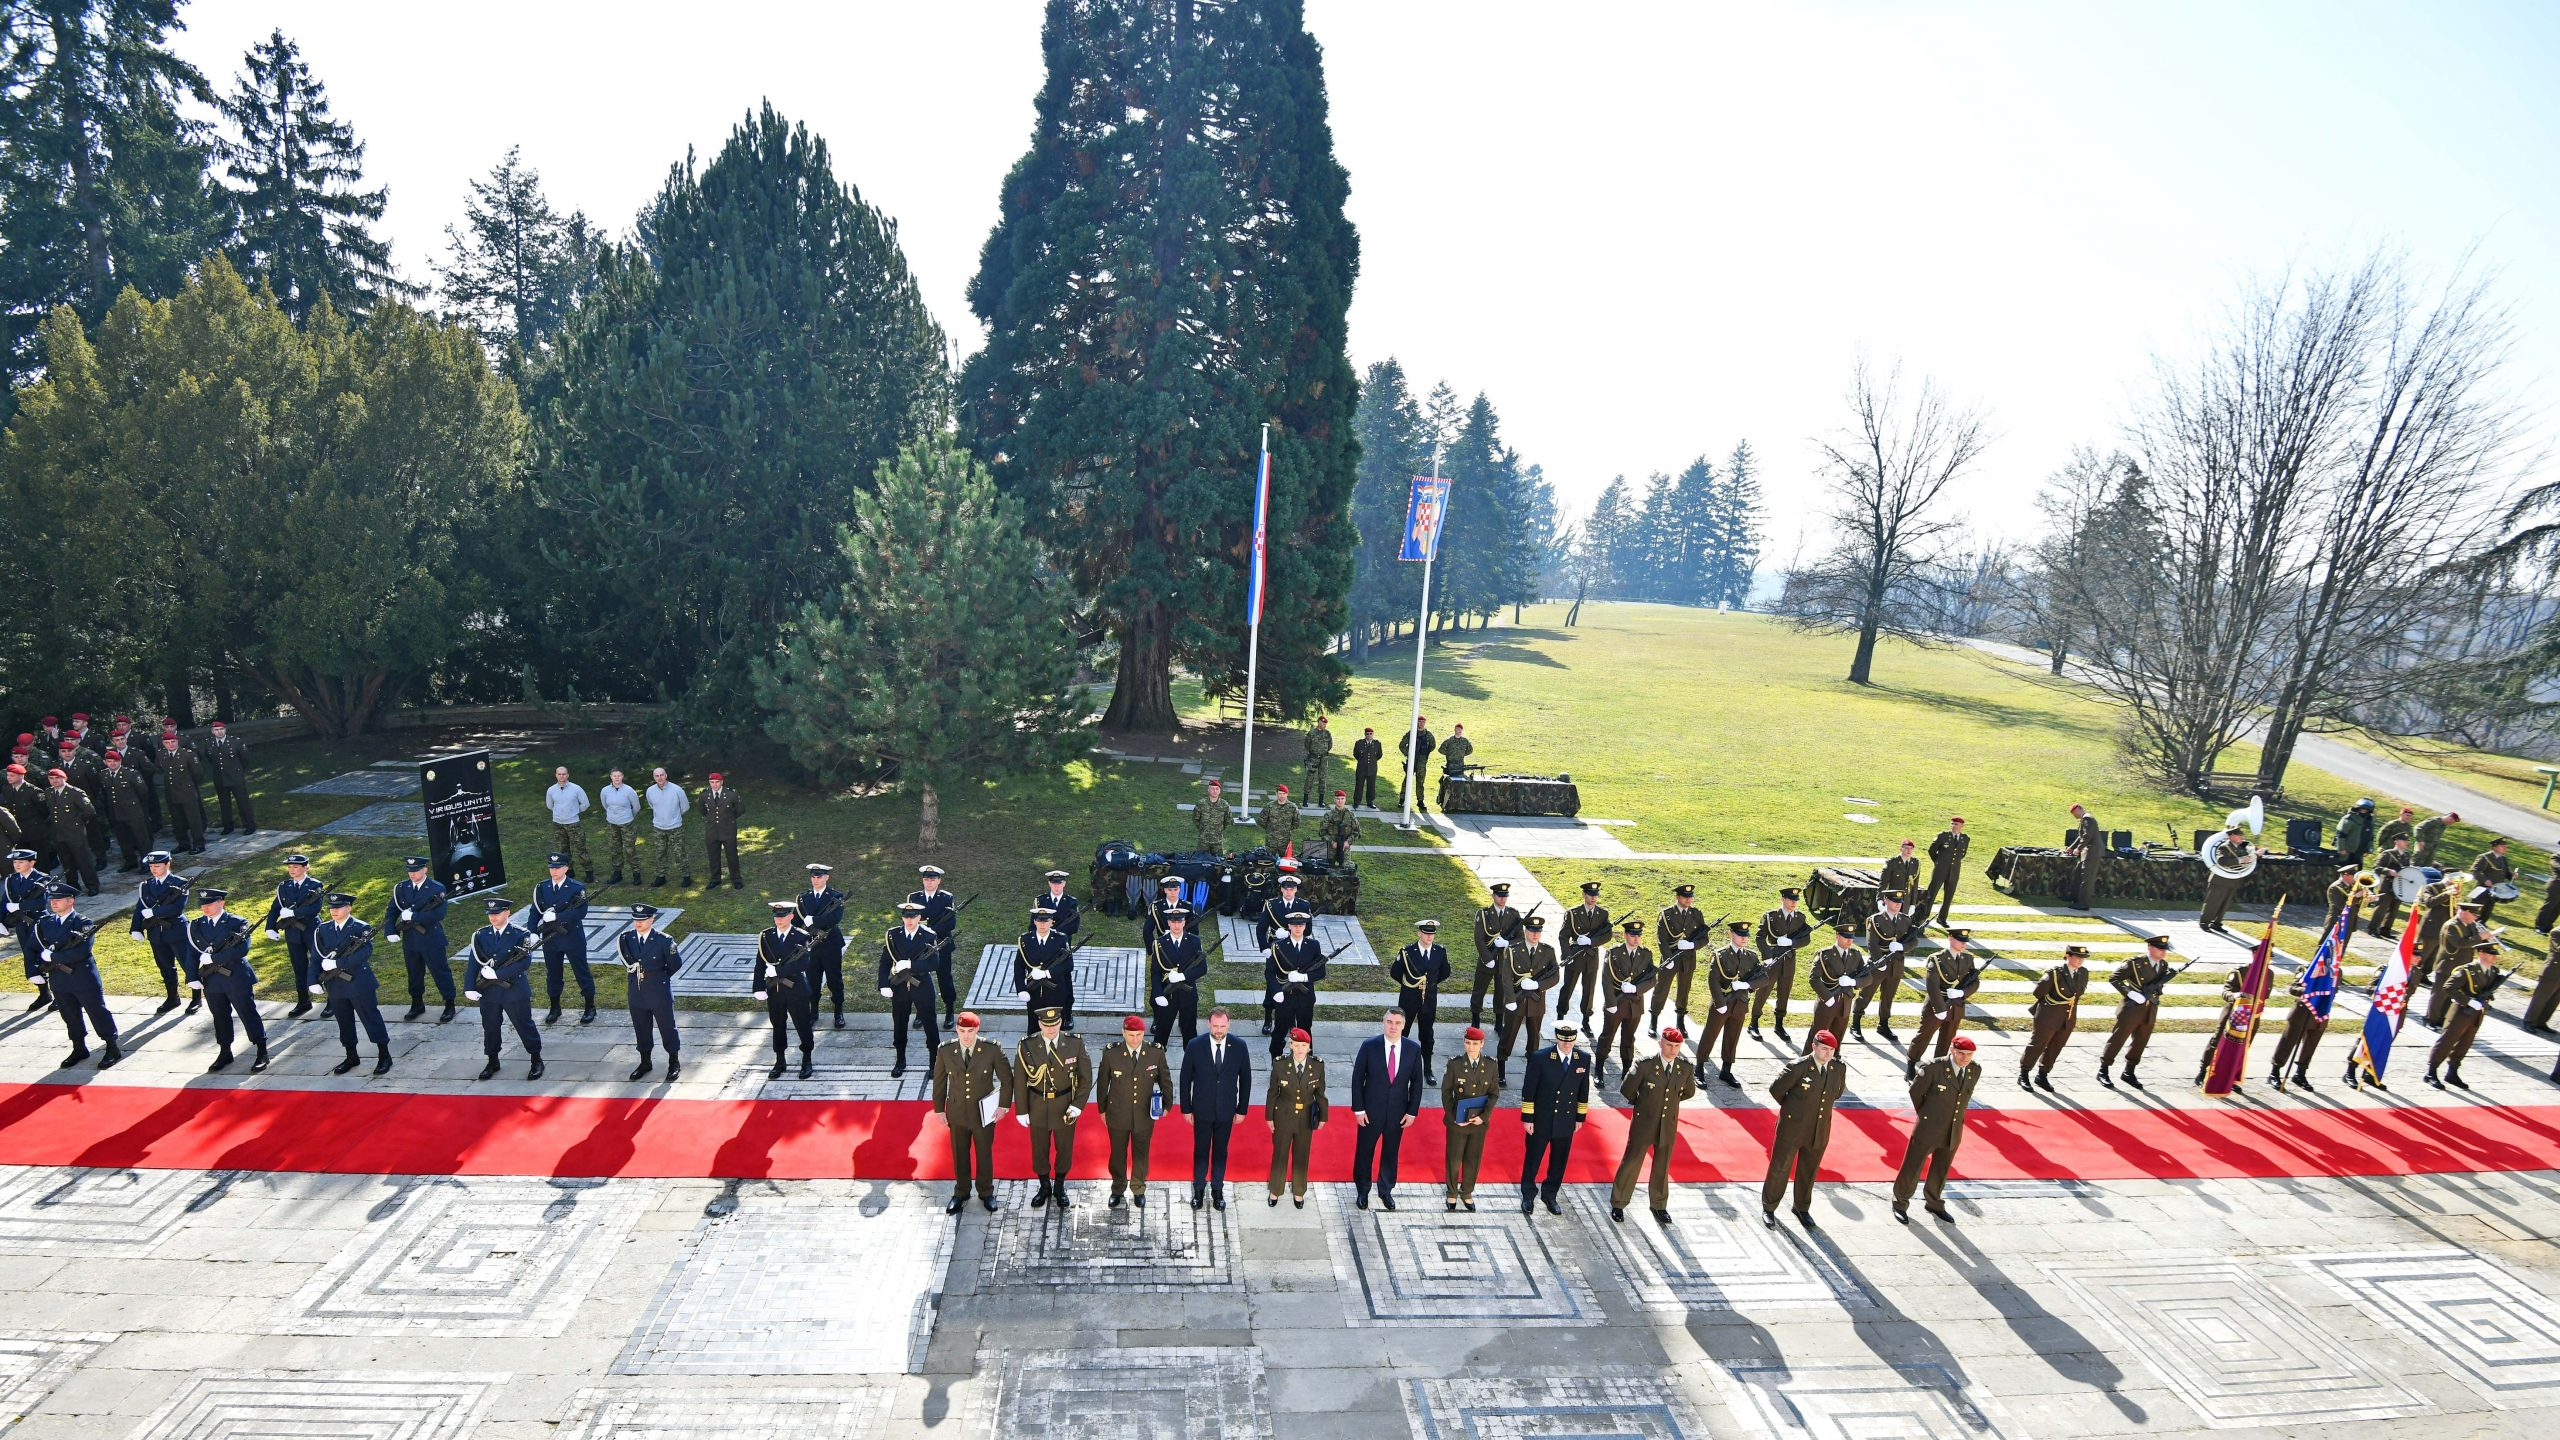 27th anniversary of Croatia's Honorary Protection Battalion marked 2